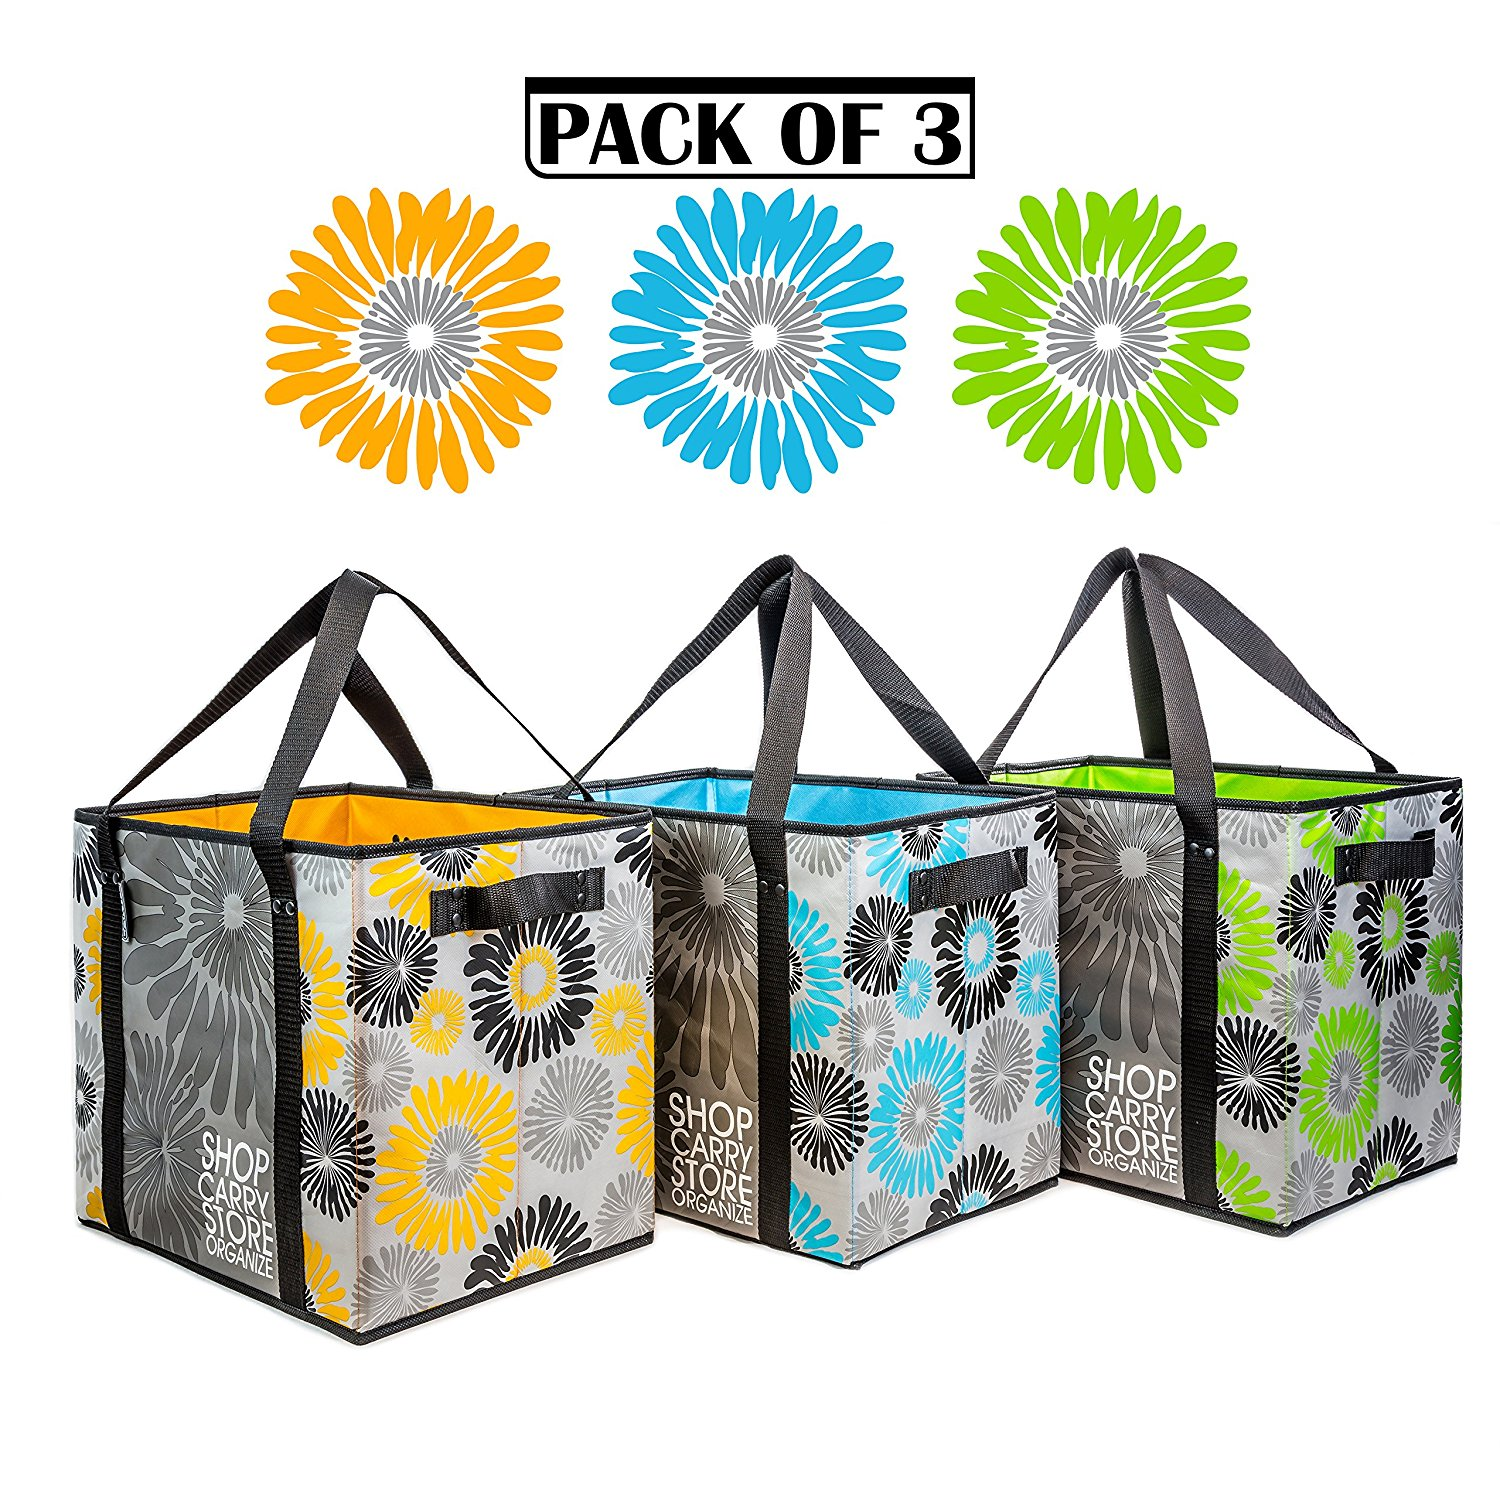 Reusable Grocery Shopping Bags (3 Pack / 3 Colors) Multipurpose for Shopping Groceries Storage Carry - 4 Handles - Collapsible Foldable Heavy Duty Large Capacity Reinforced Laminated Eco-Friendly